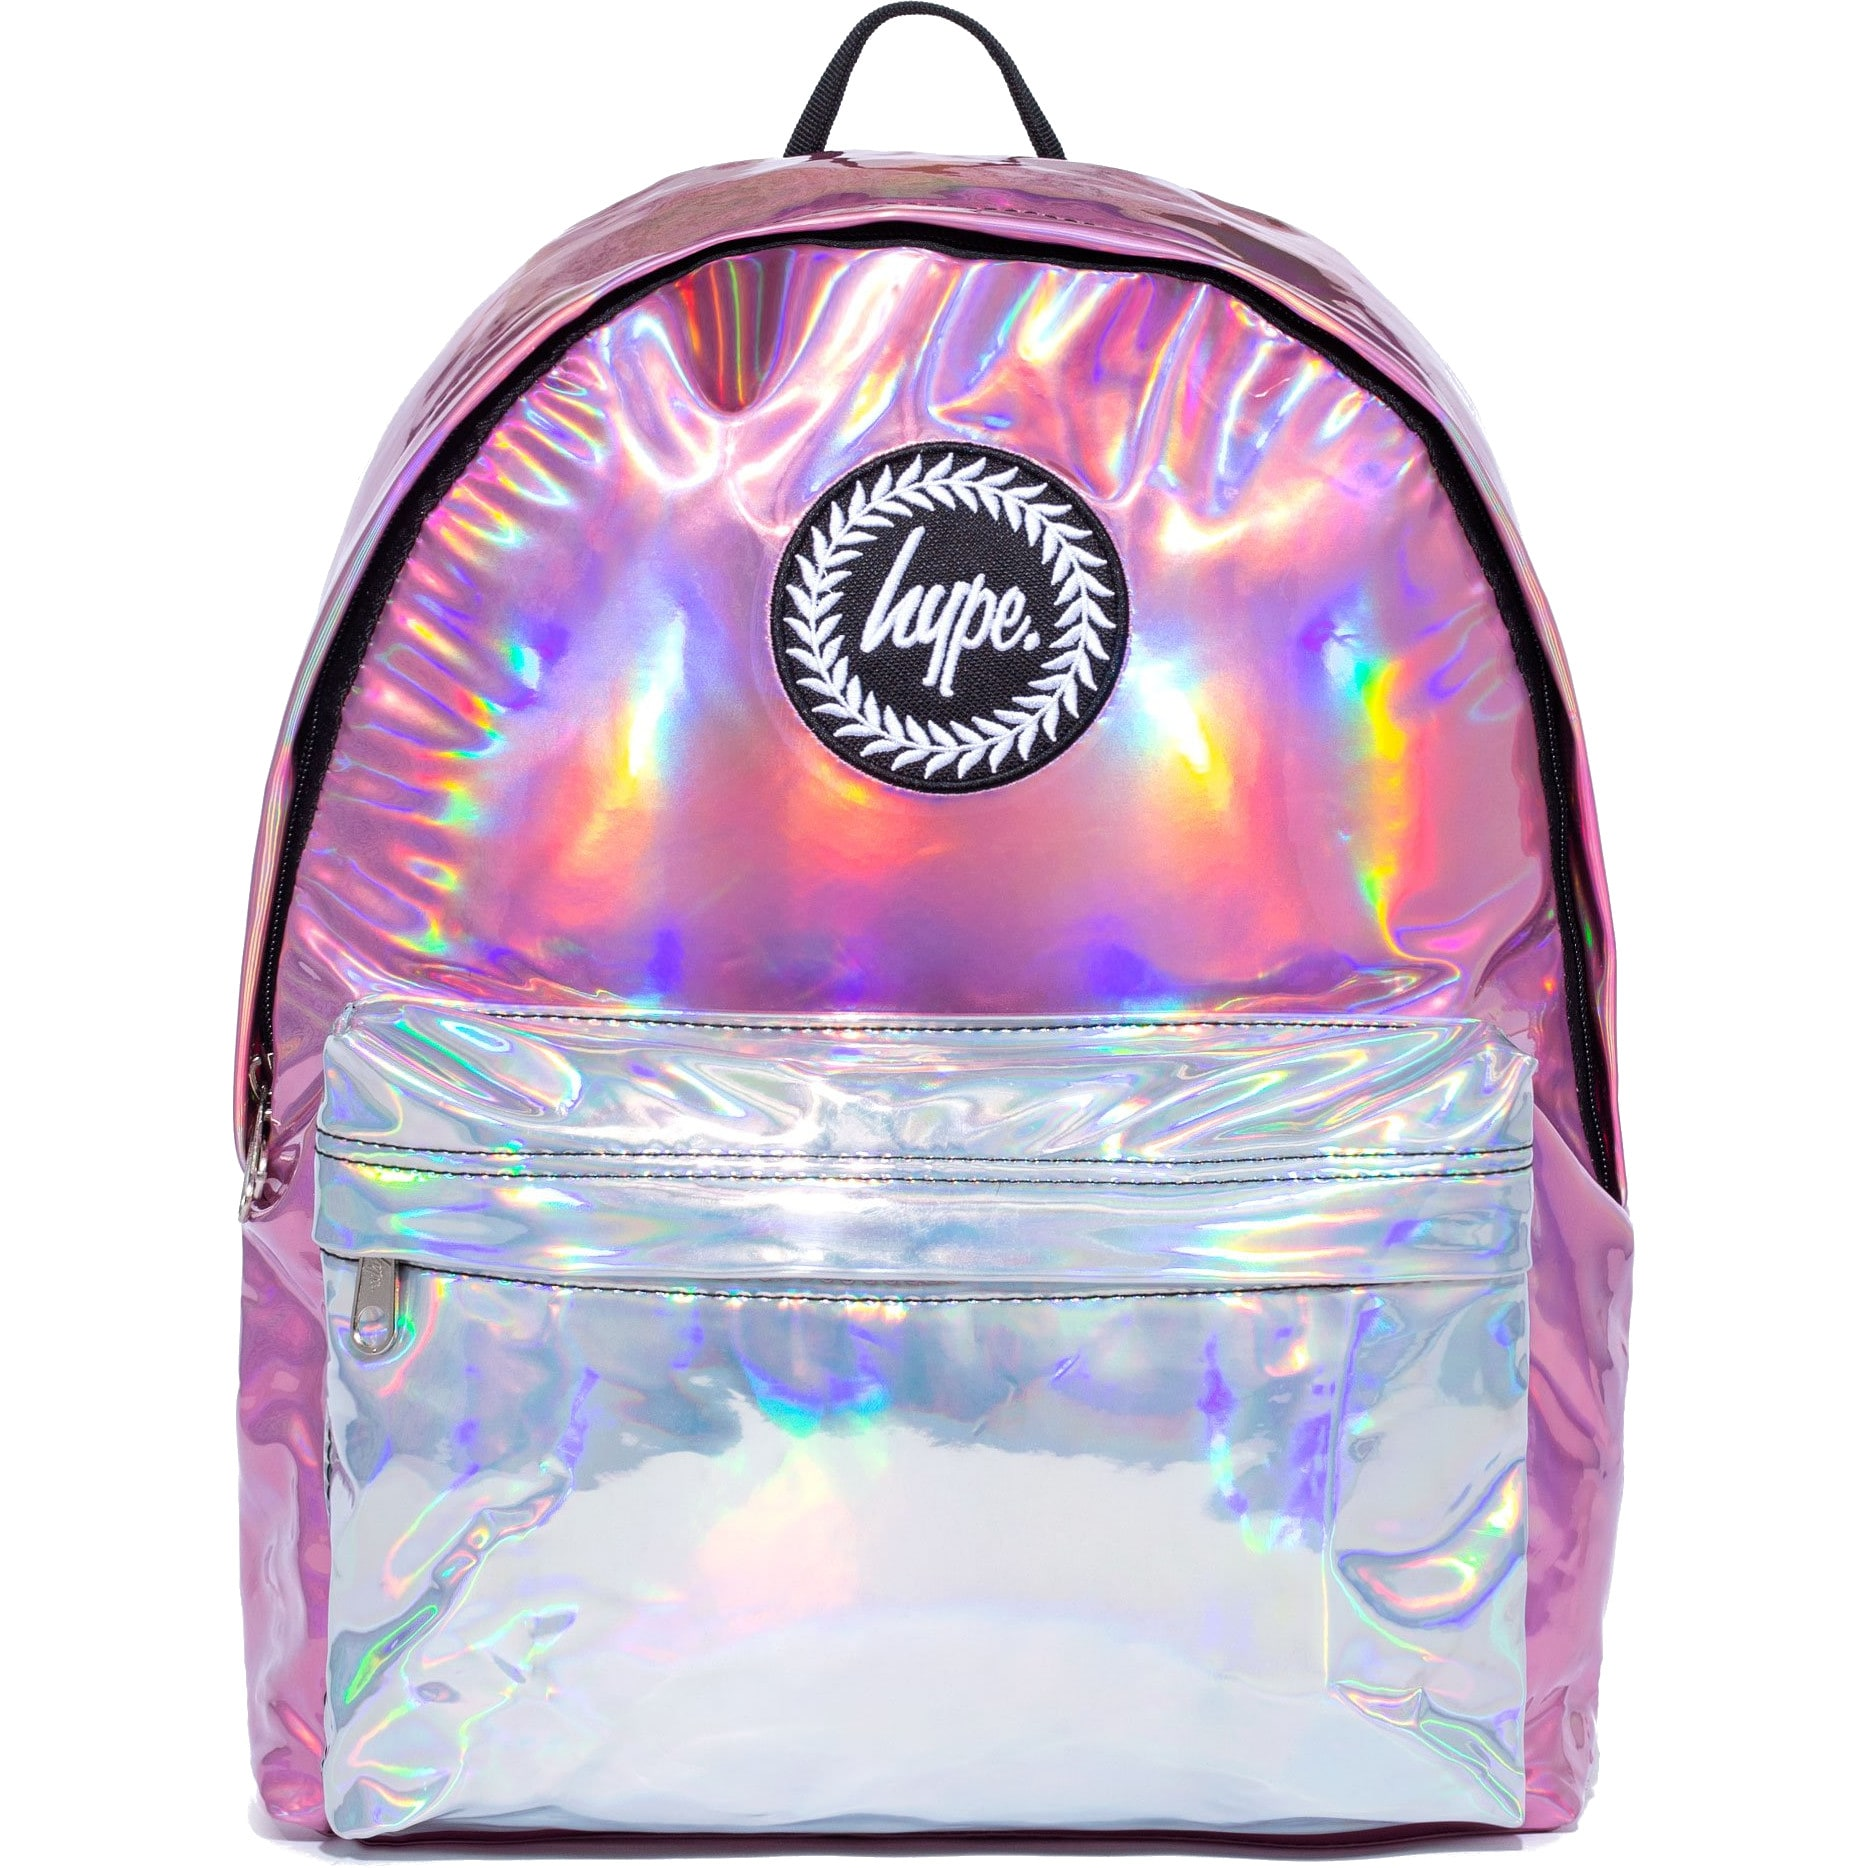 2df846302674 Hype Holographic Mix Backpack - Pink Silver 5057896042367